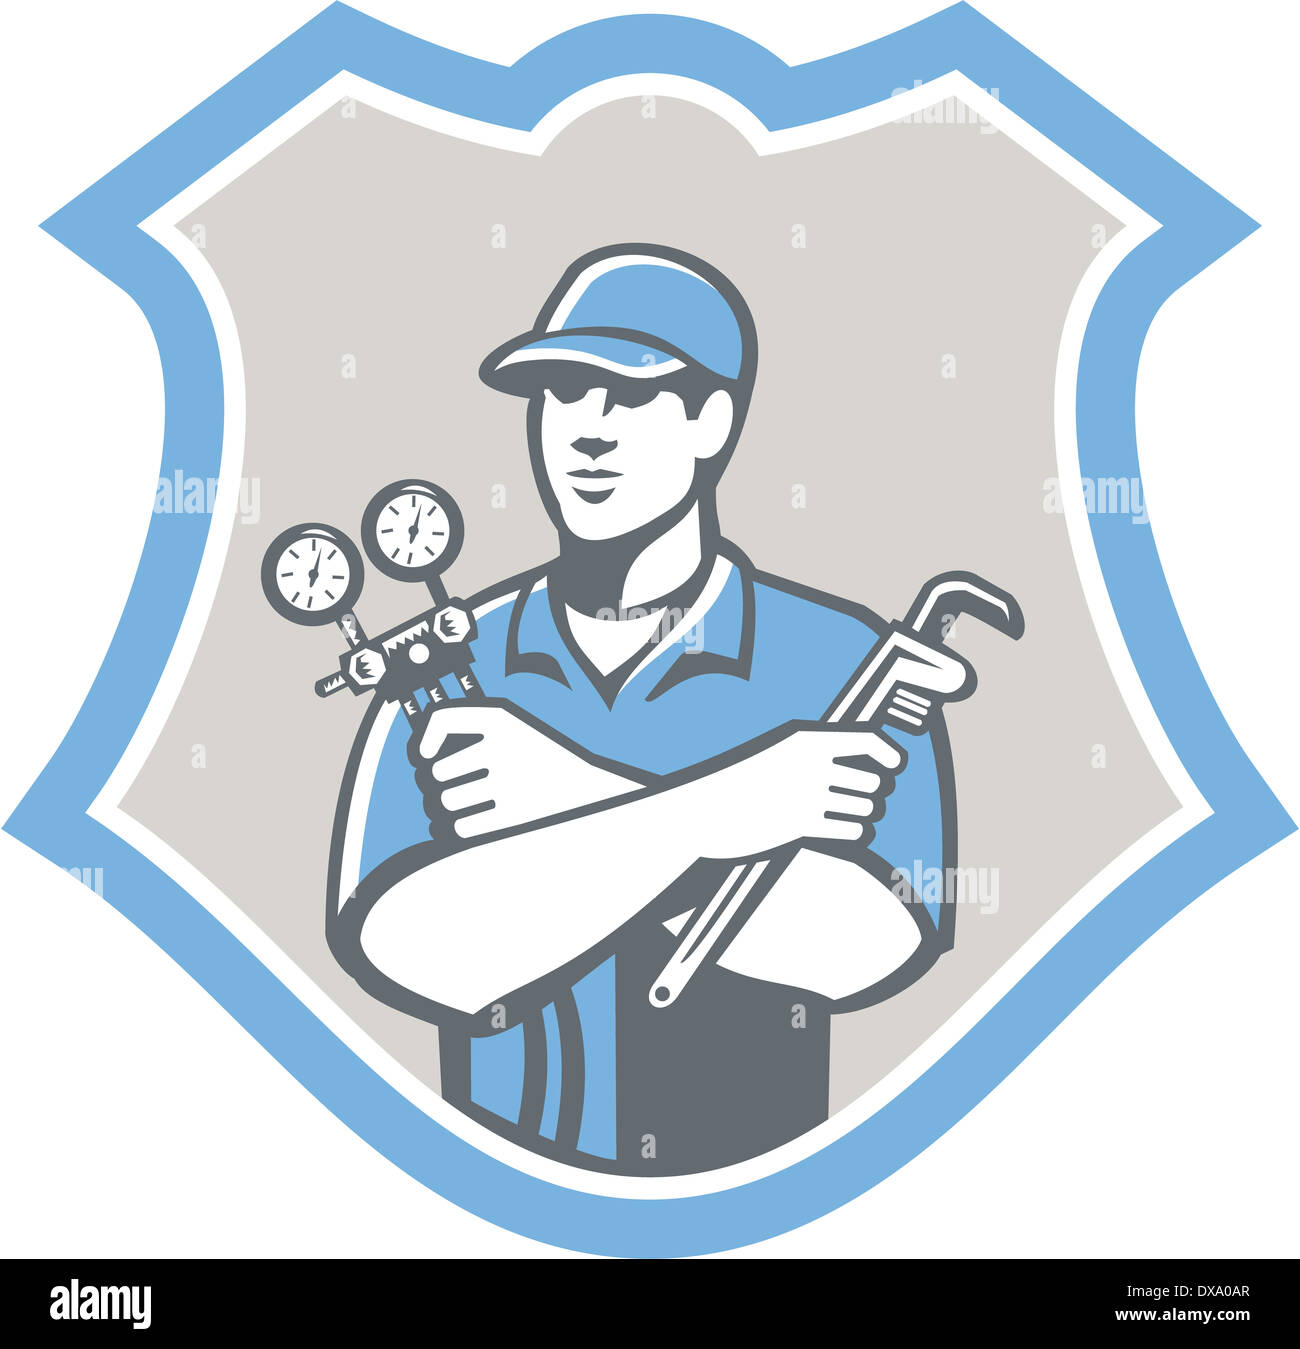 Illustration of a refrigeration and air conditioning mechanic holding a pressure temperature gauge and ac manifold Stock Photo